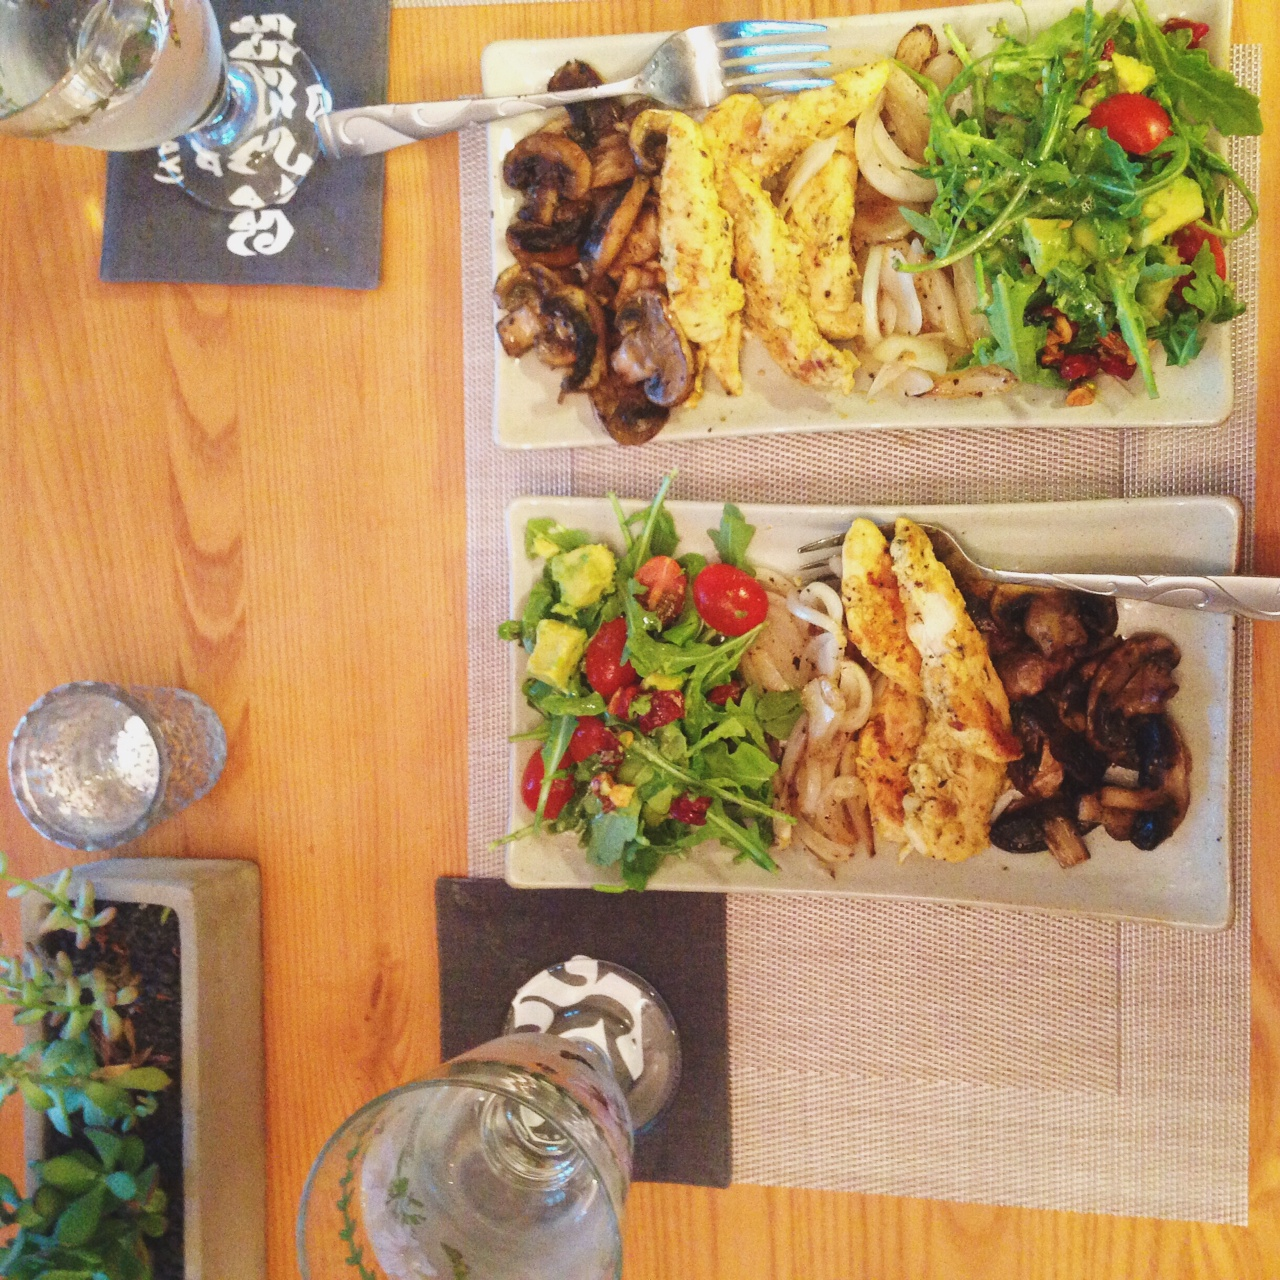 A more elaborate dinner: Mustard-marinated chicken, grilled onions and mushrooms, arugula salad with tomatoes and avocado